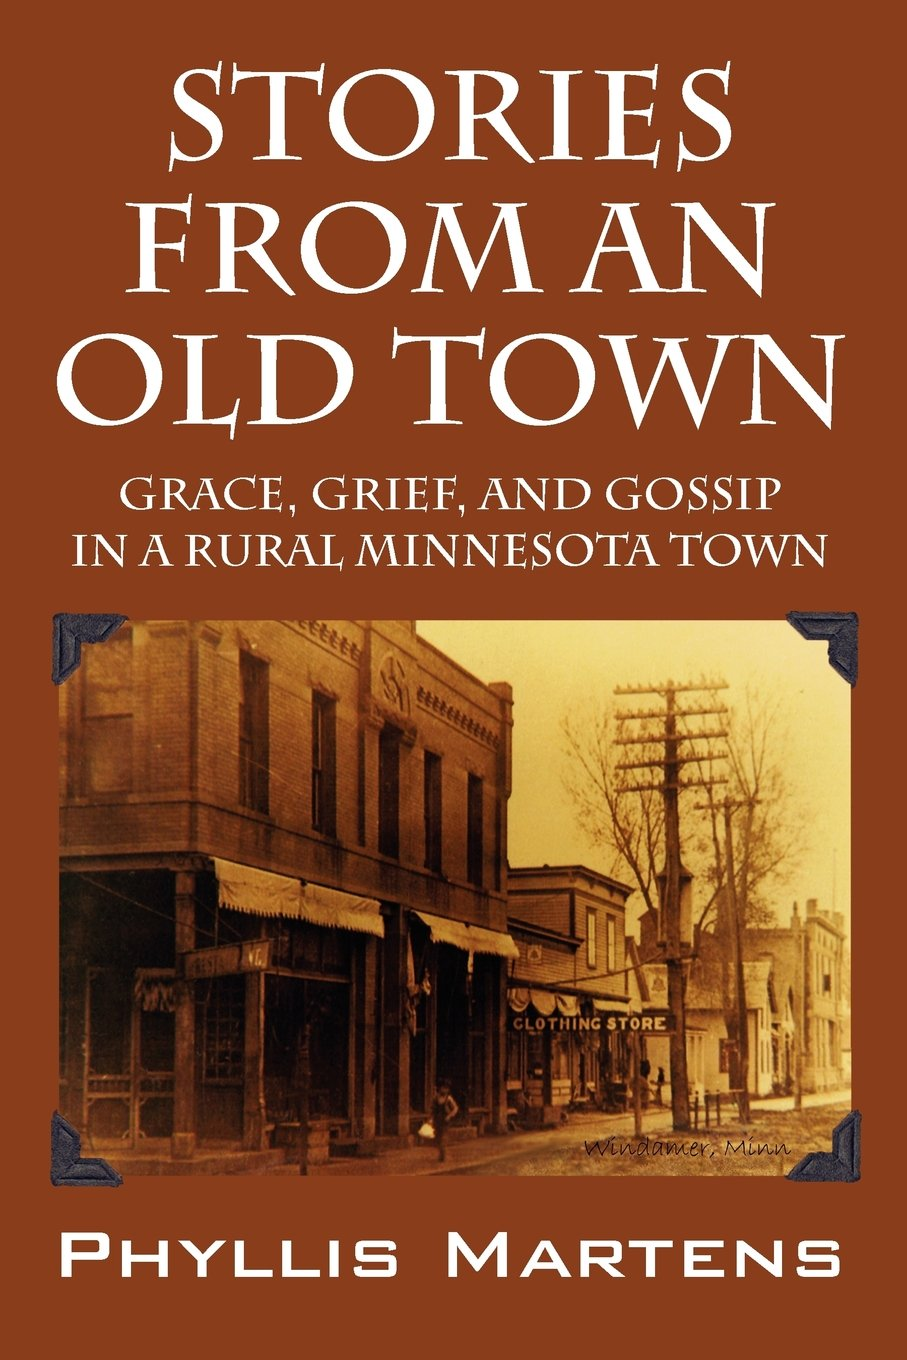 Stories from an Old Town: Grace, Grief, and Gossip in a Rural Minnesota Town